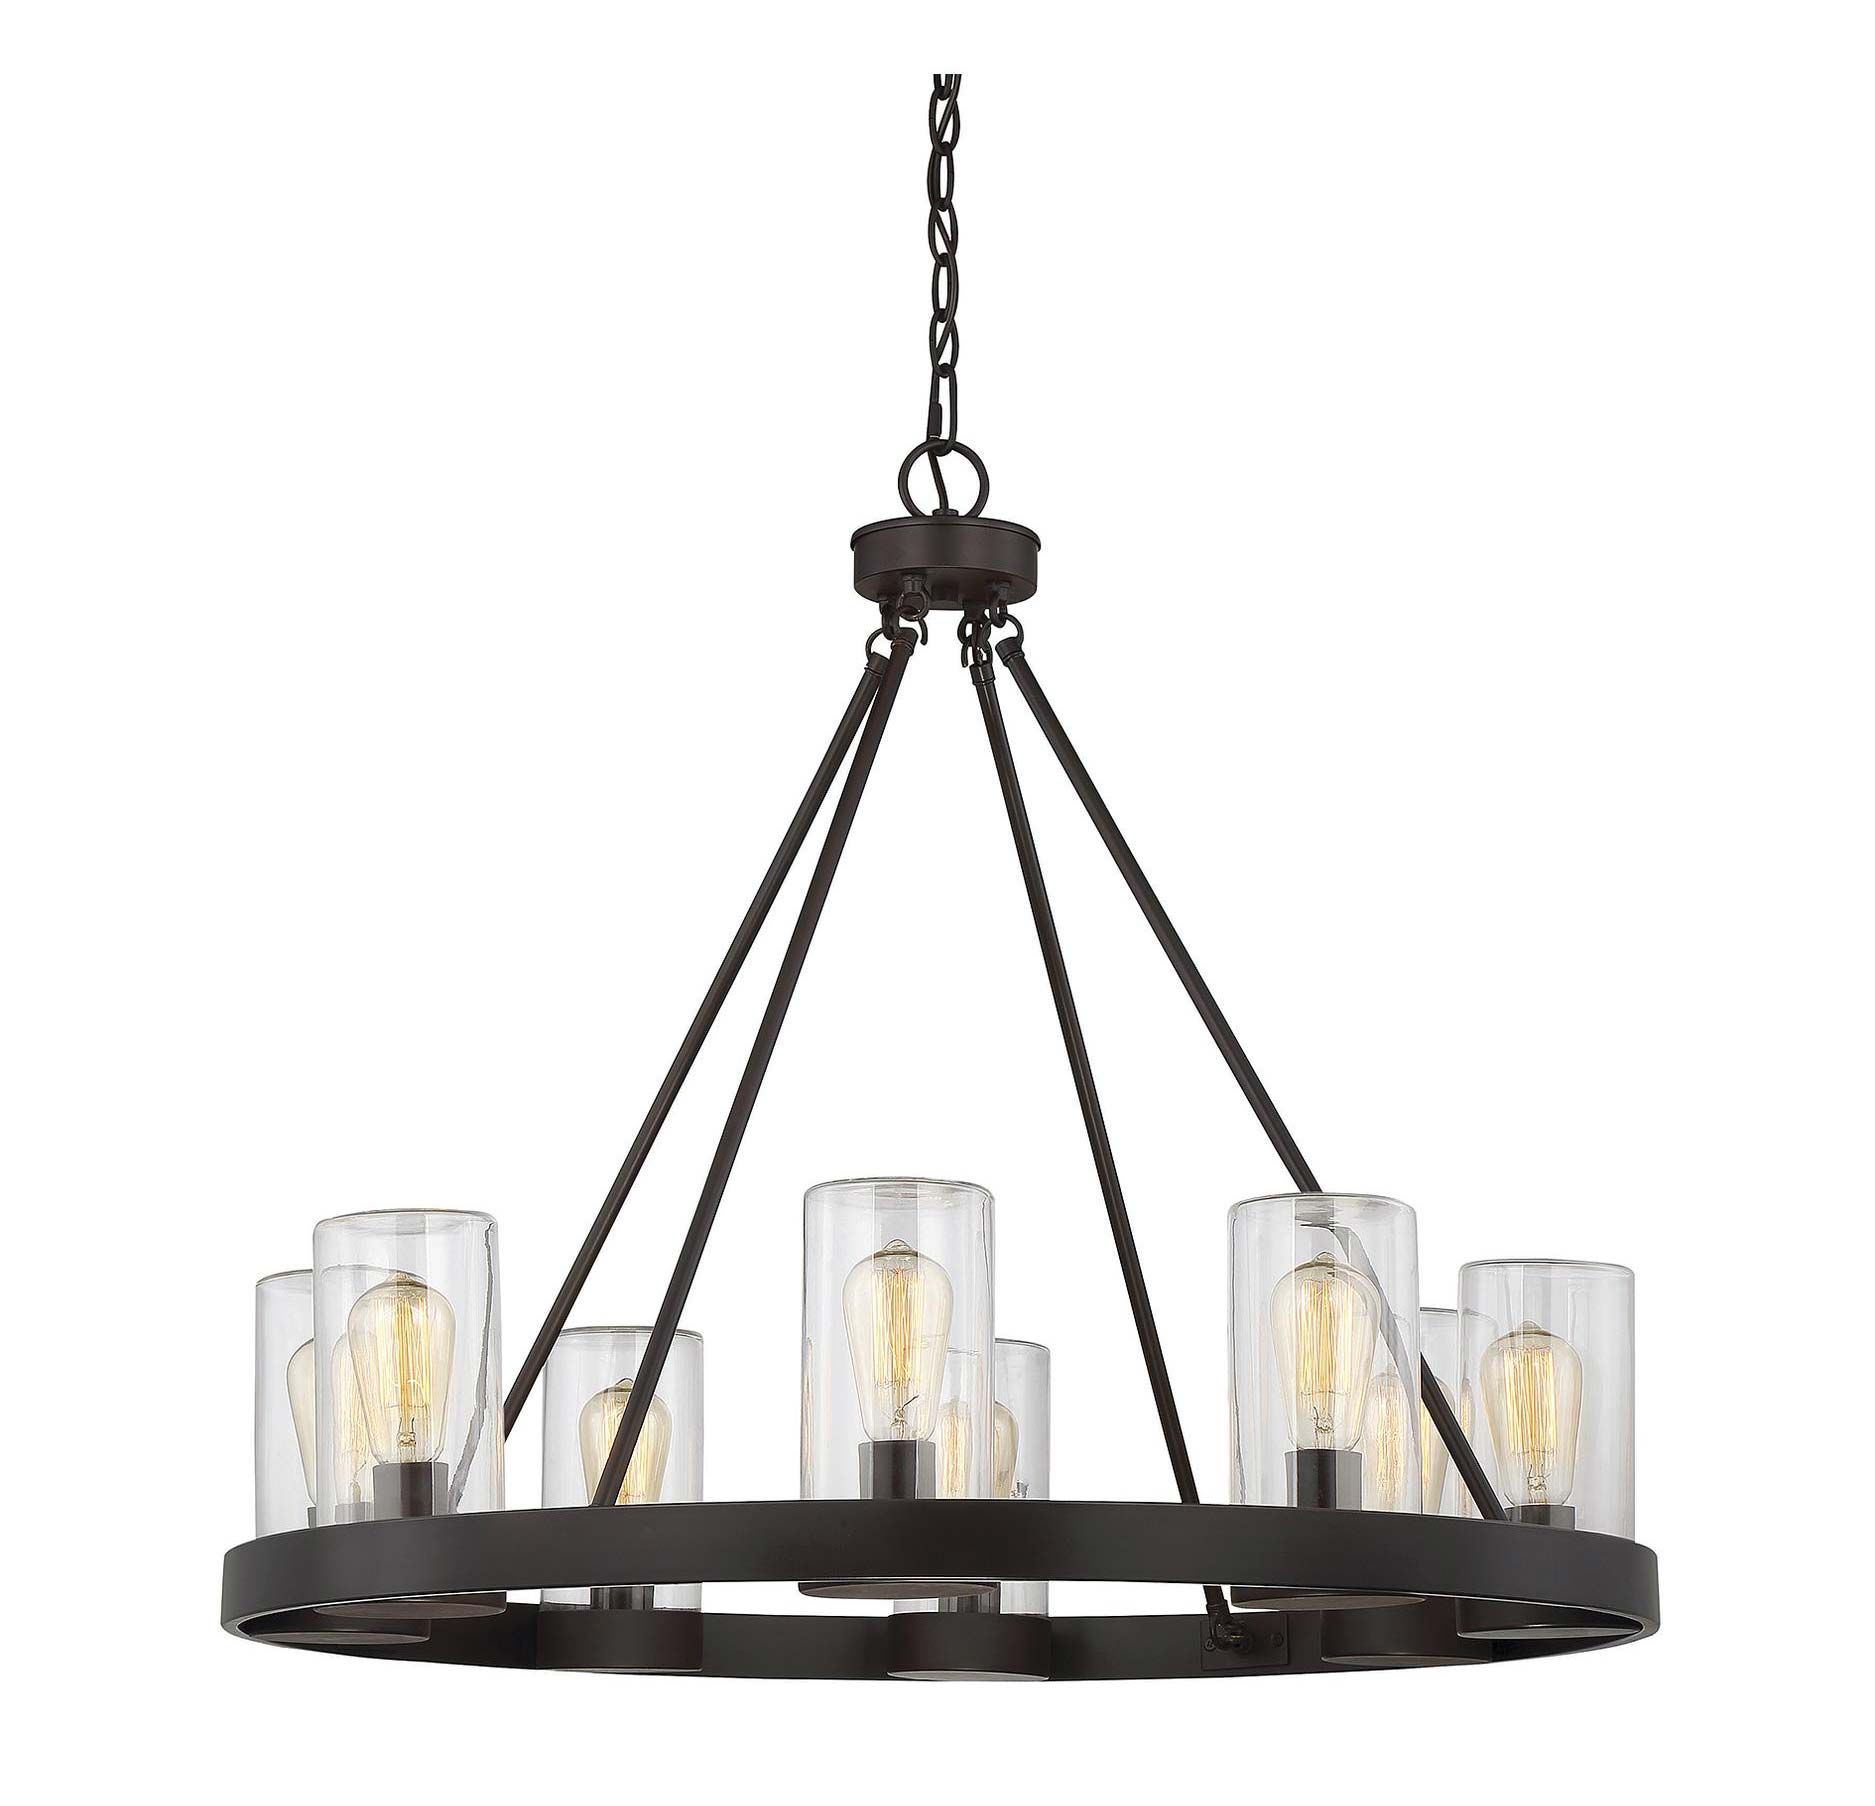 Inman Round Outdoor Chandelier By Savoy House 1 1130 8 13 Outdoor Chandelier Outdoor Hanging Lights Savoy House Lighting